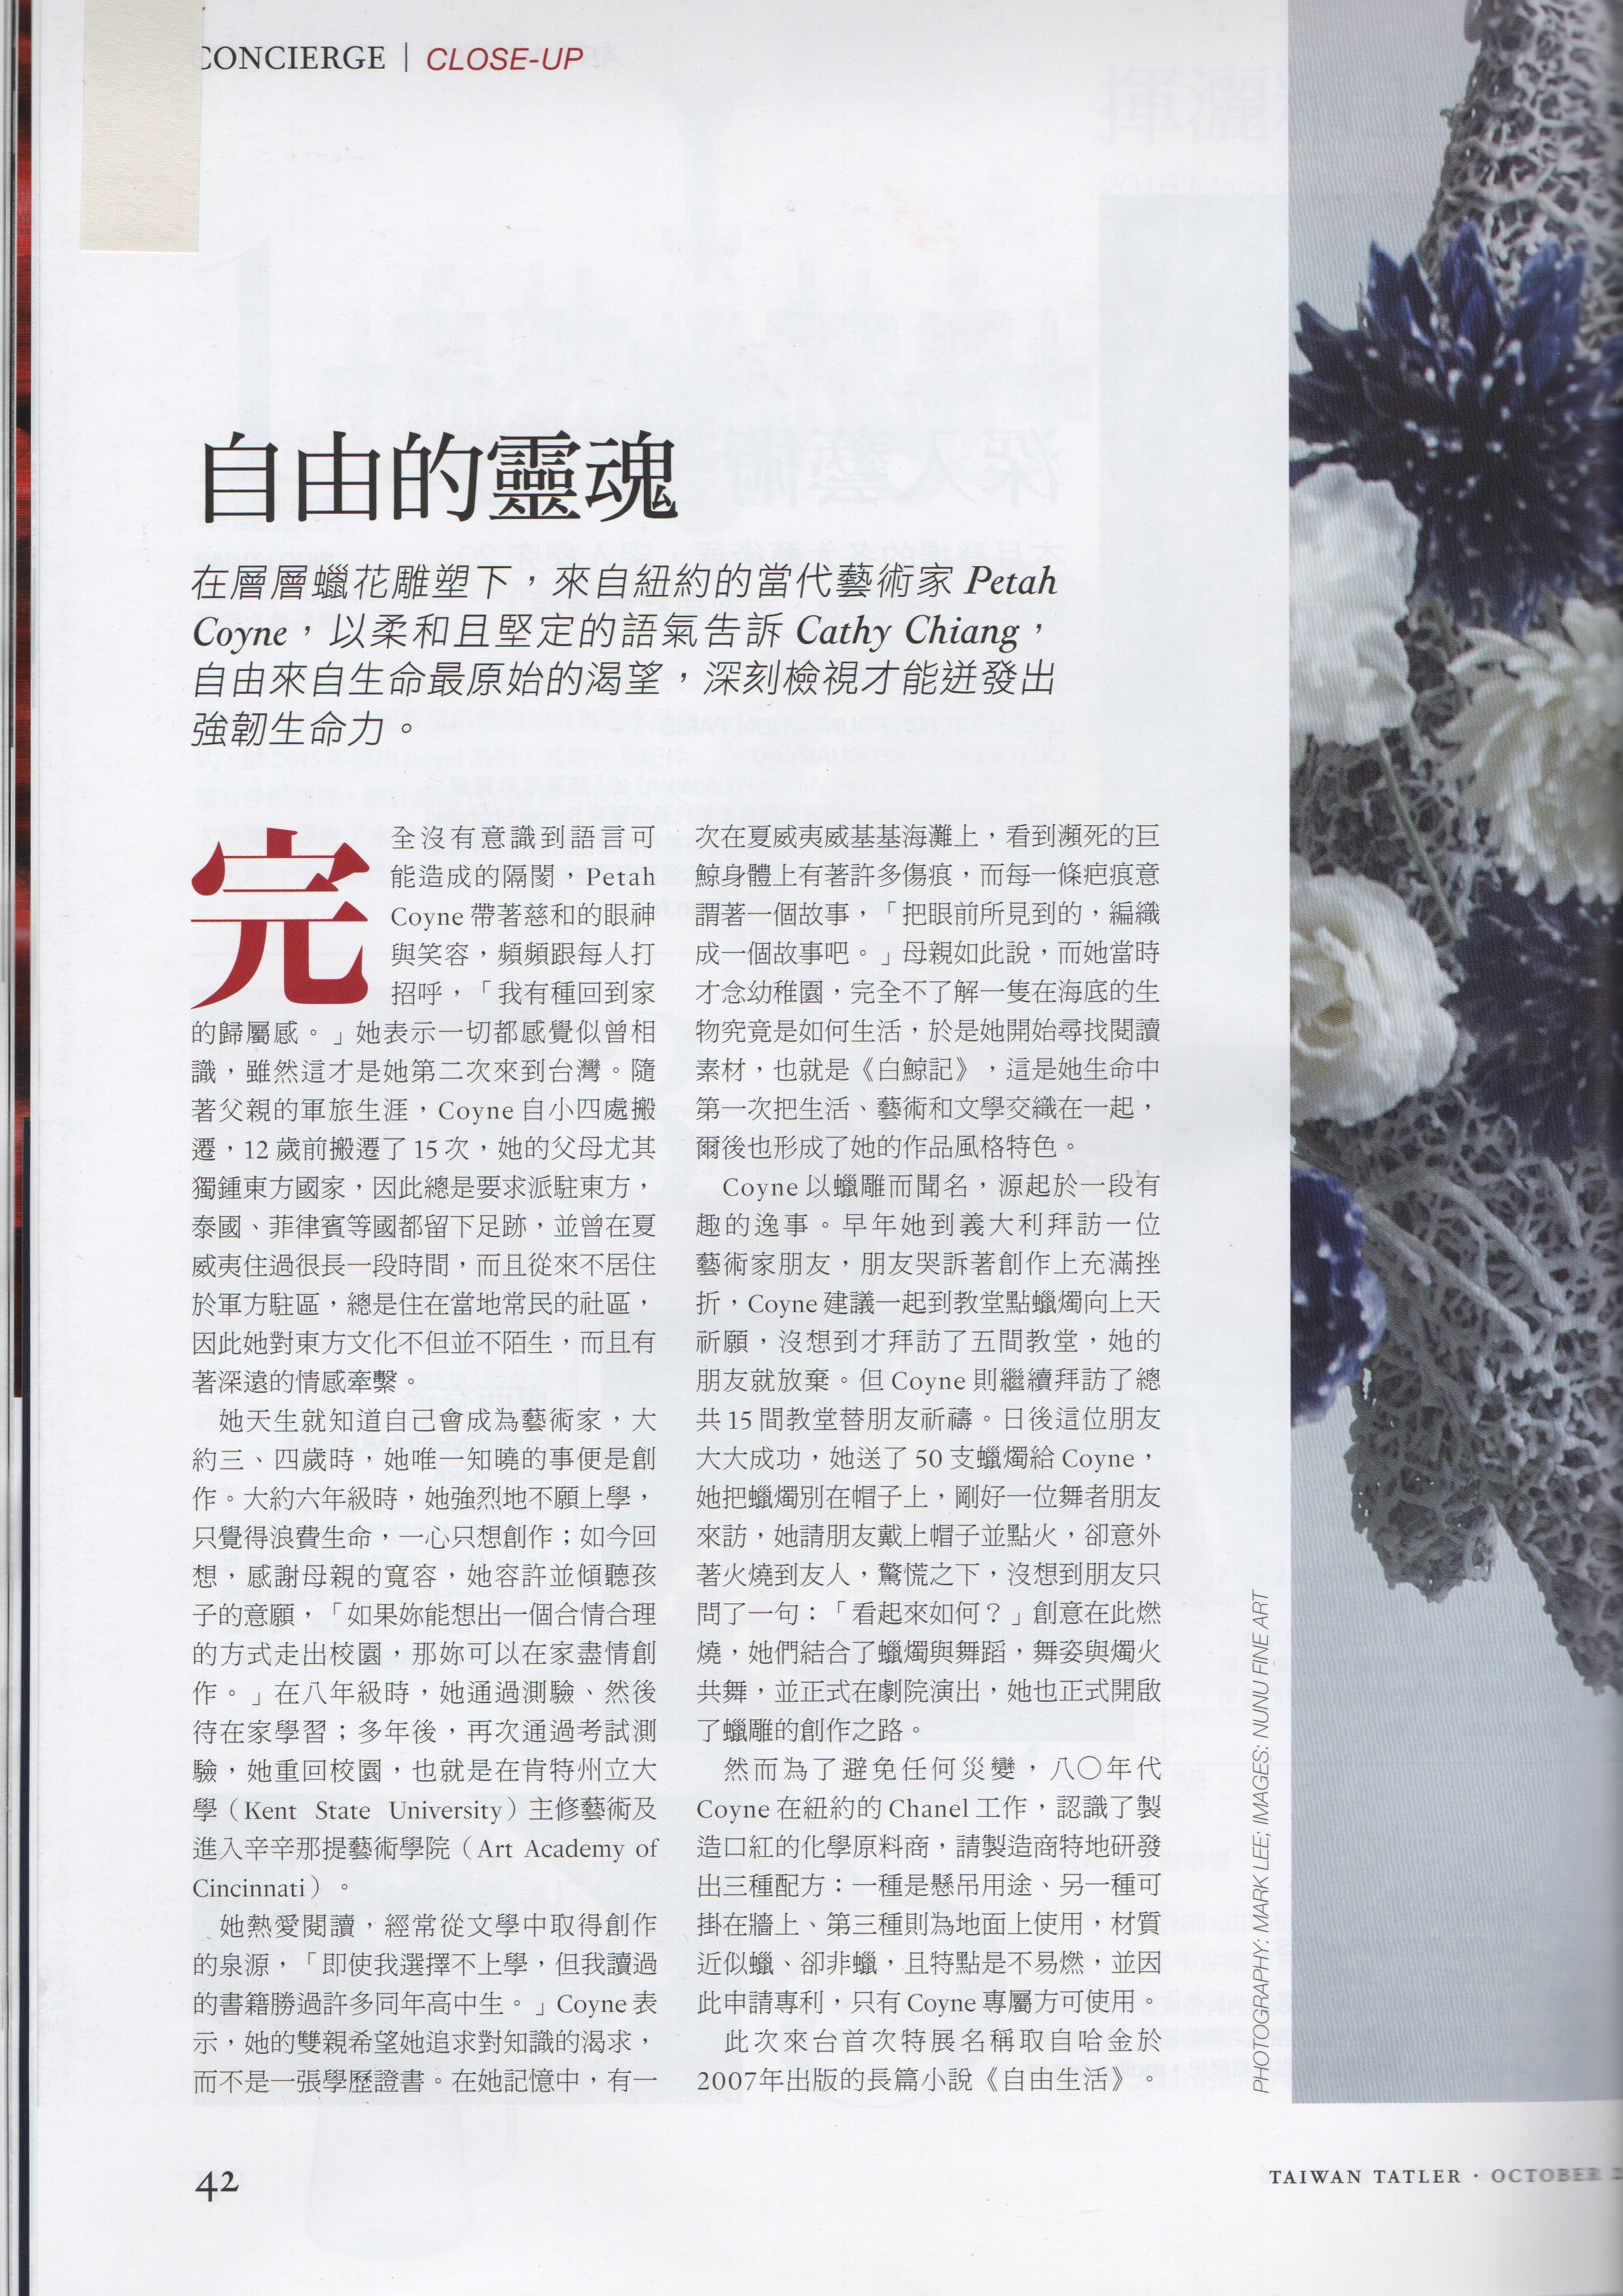 PC_AFreeLife_Taiwan Tatler1.jpeg